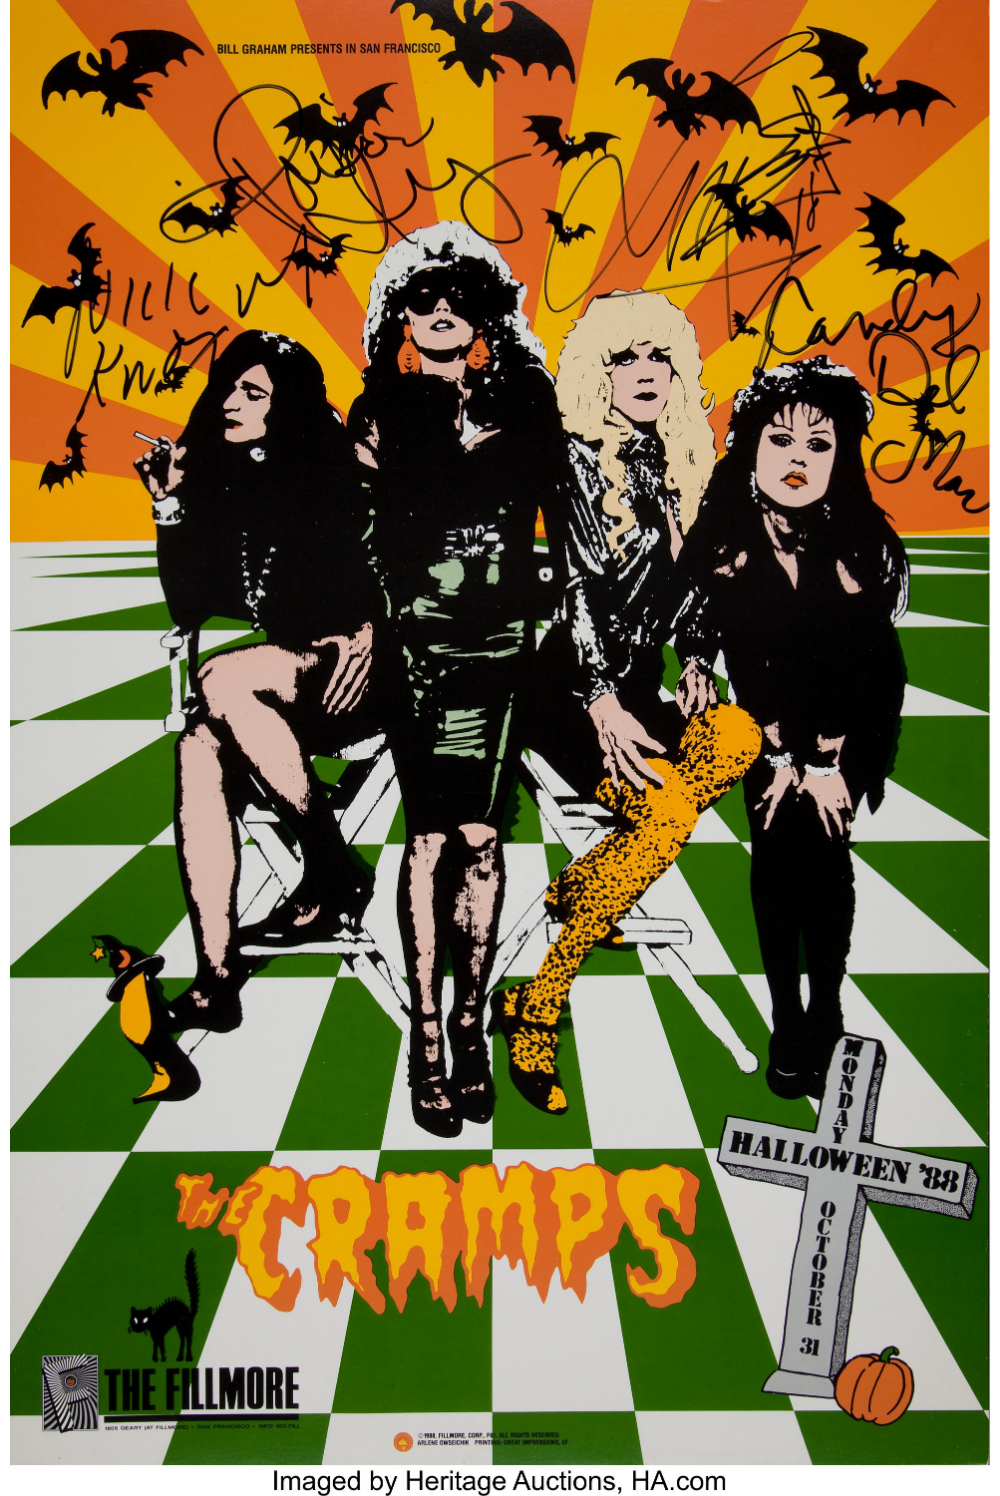 Halloween 2020 Autographed Poster World's Largest Collectibles Auctioneer in 2020 | Punk poster